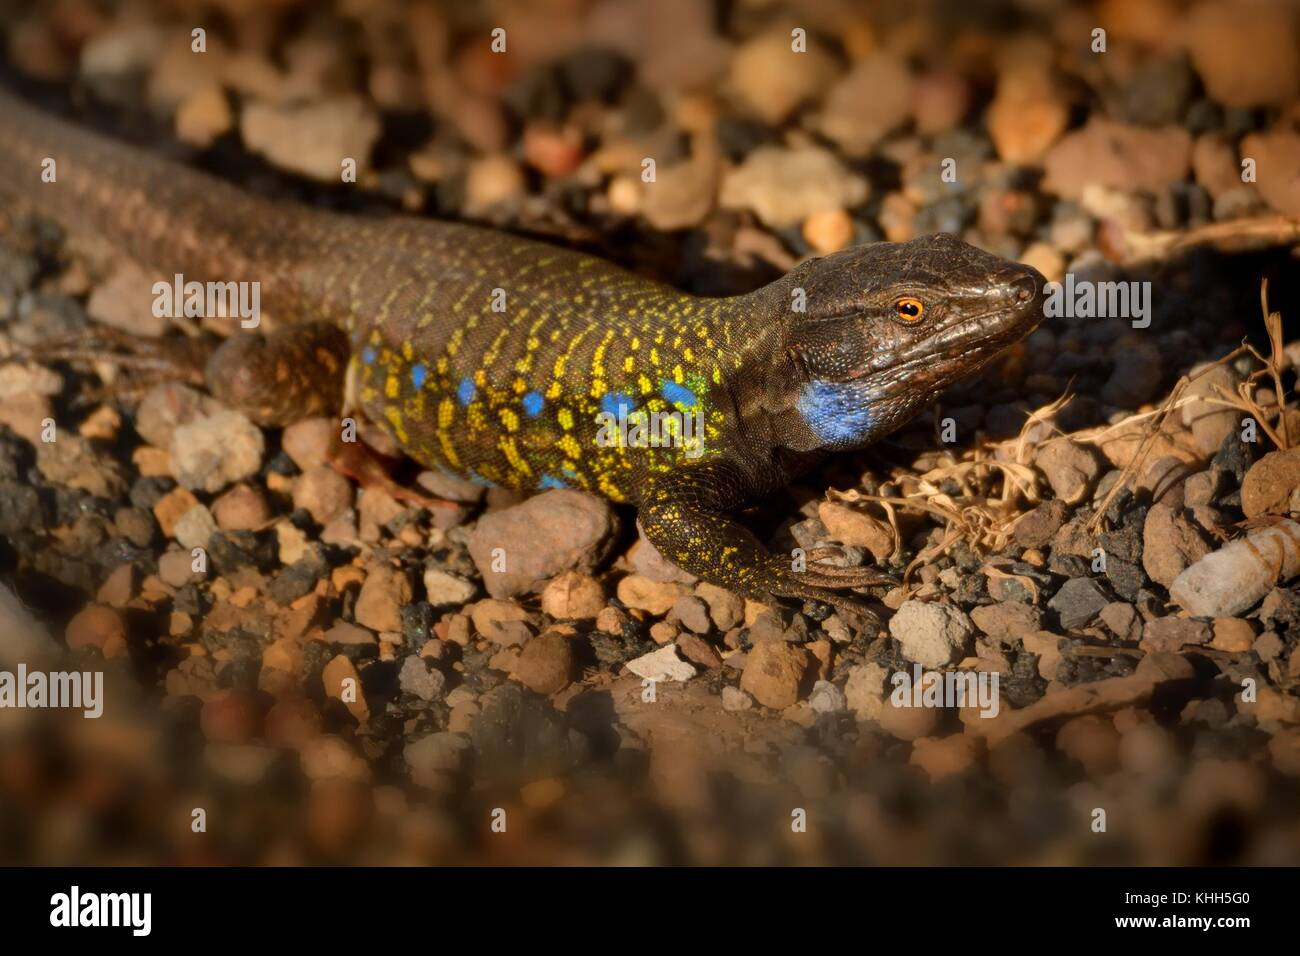 Tenerife Lizard - Gallotia galloti basking in the afternoon sun - Stock Image